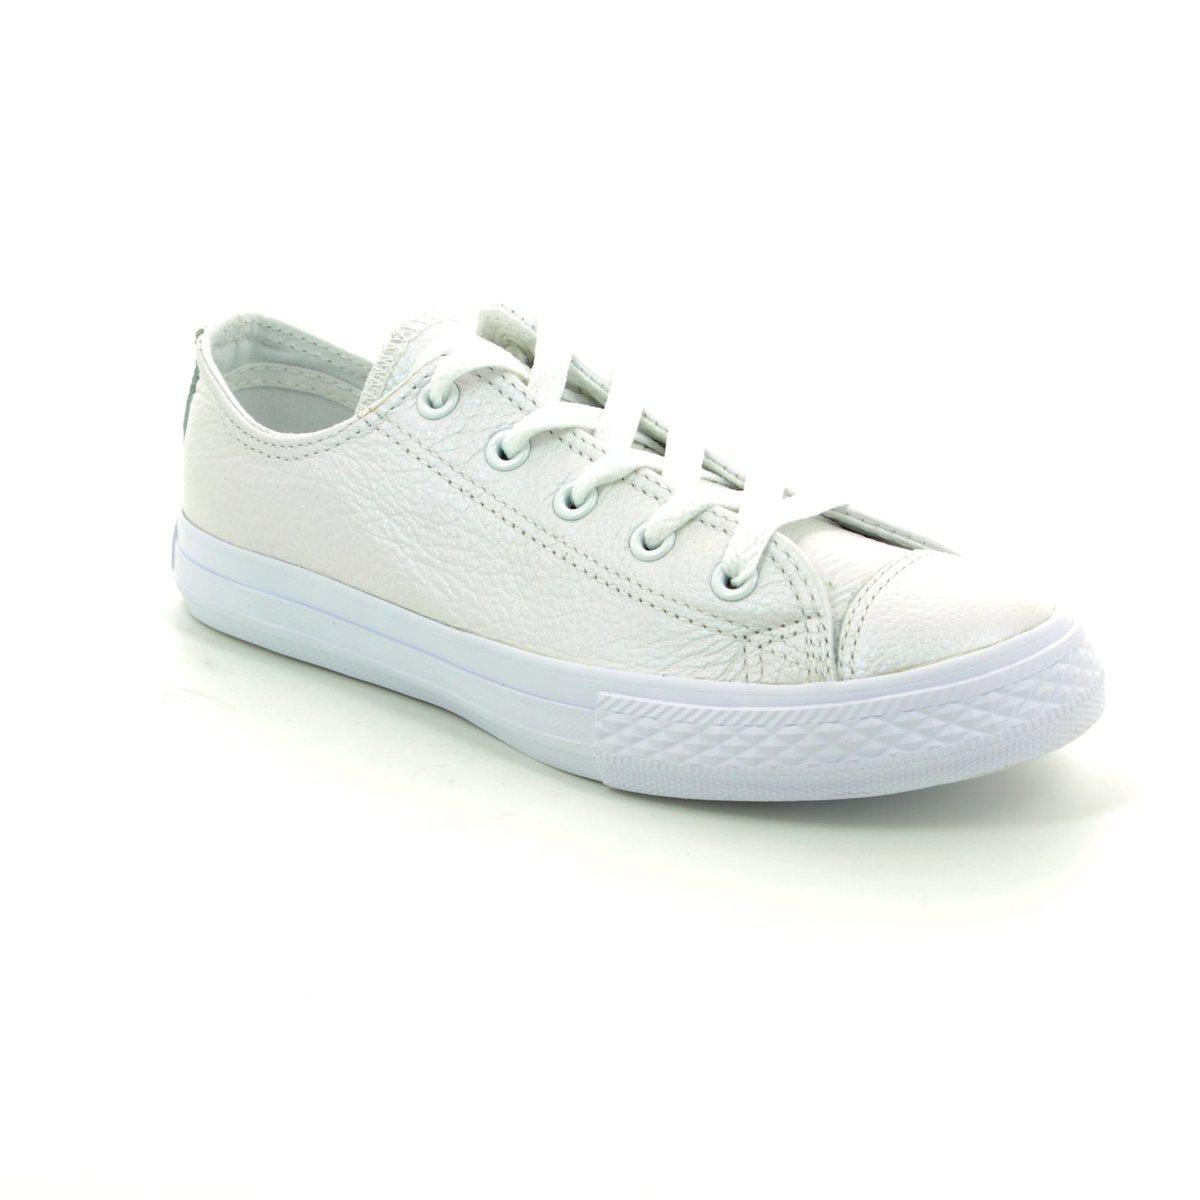 Converse Trainers - White - 358009C Chuck Taylor All Star Ox Junior Leather